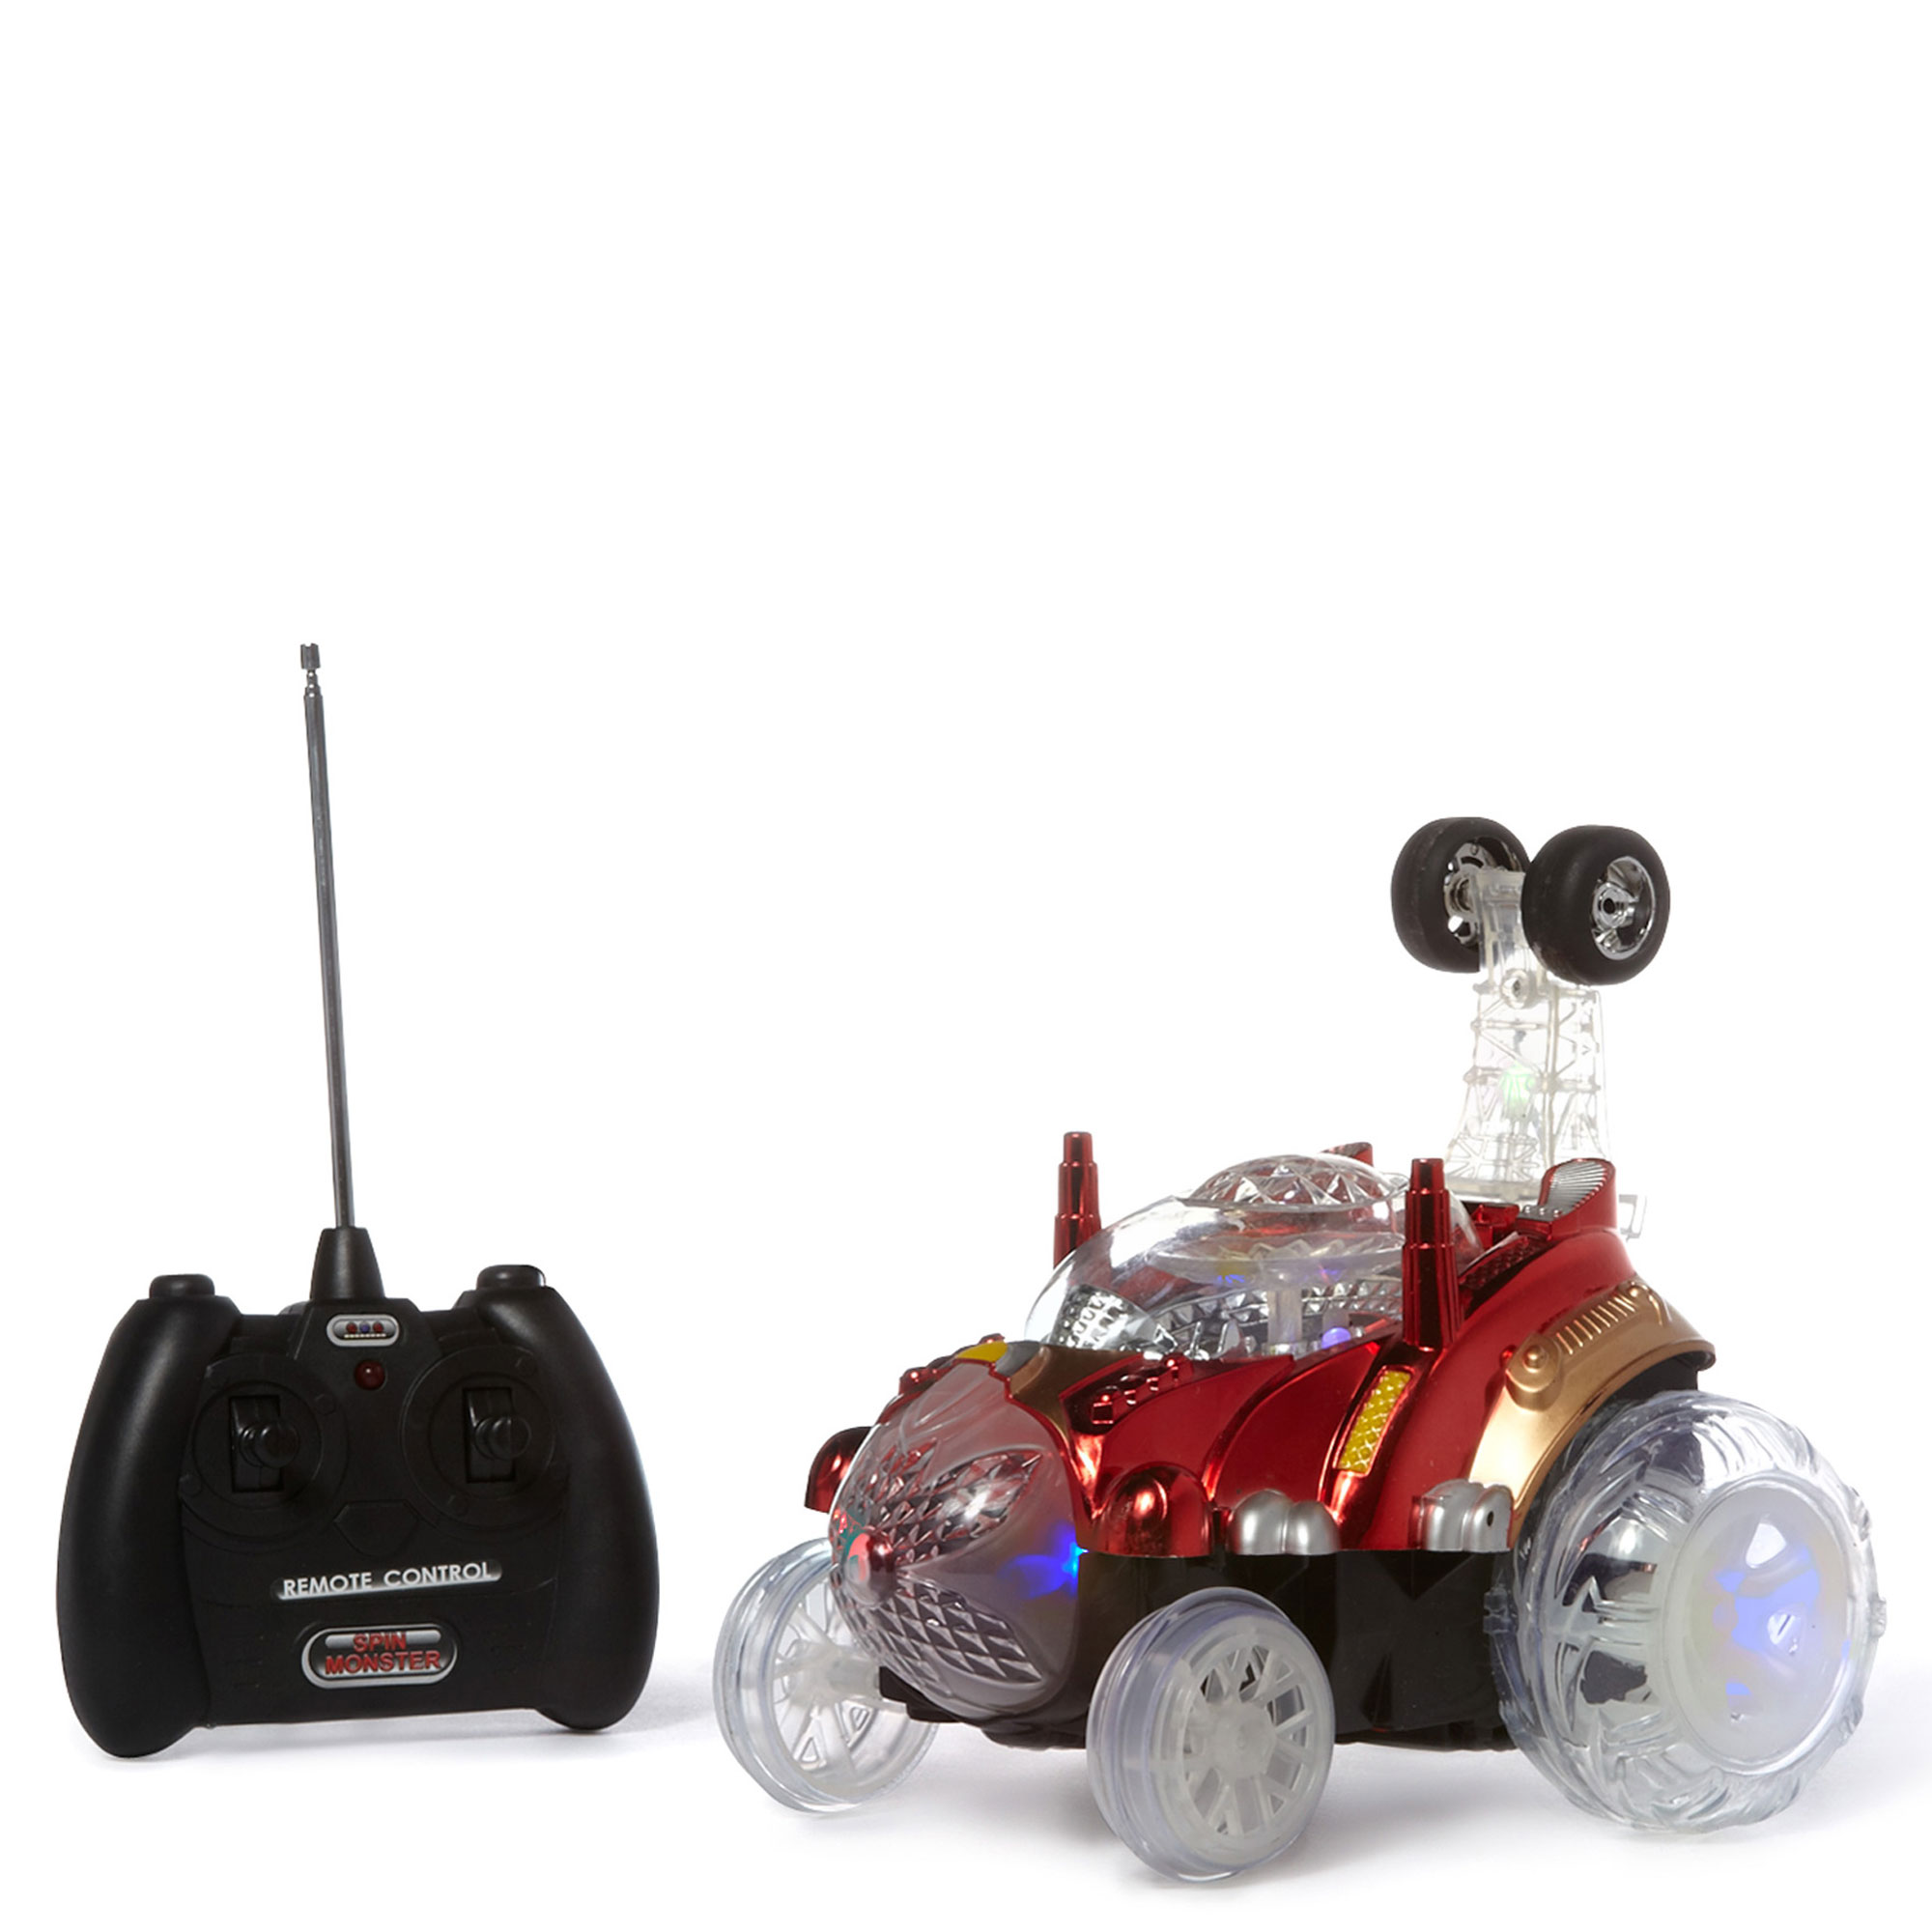 turbo tumbler remote control car with Rdm 20creations Childs 20toys on Rc Tumbler Stunt Car furthermore Low Price Dancing Elf Multifunctional Remote Control Magic Acrobatic Car For Sale likewise Product likewise 19176244 moreover HITARI Remote Control Cars Reviews.